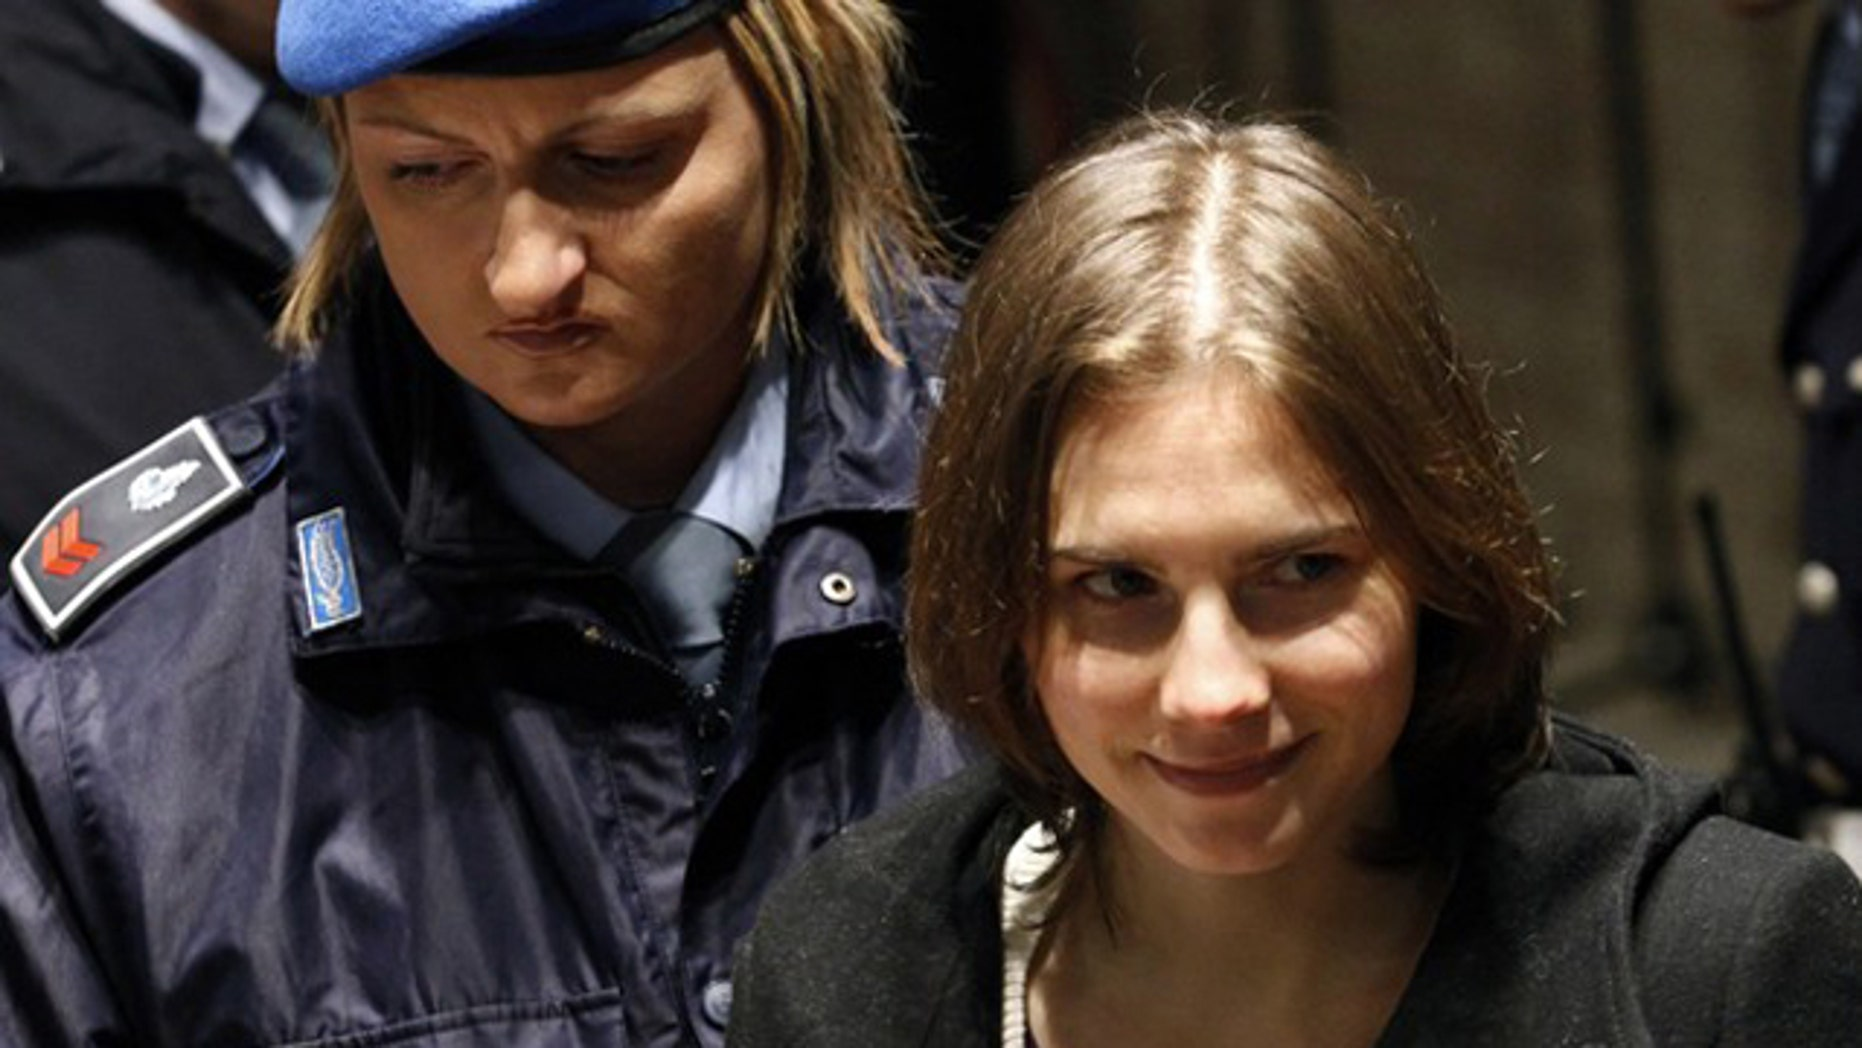 Jan. 22: Amanda Knox, the U.S. student convicted of killing her British flatmate in Italy in 2007, arrives back in court after a break during a trial session in Perugia.